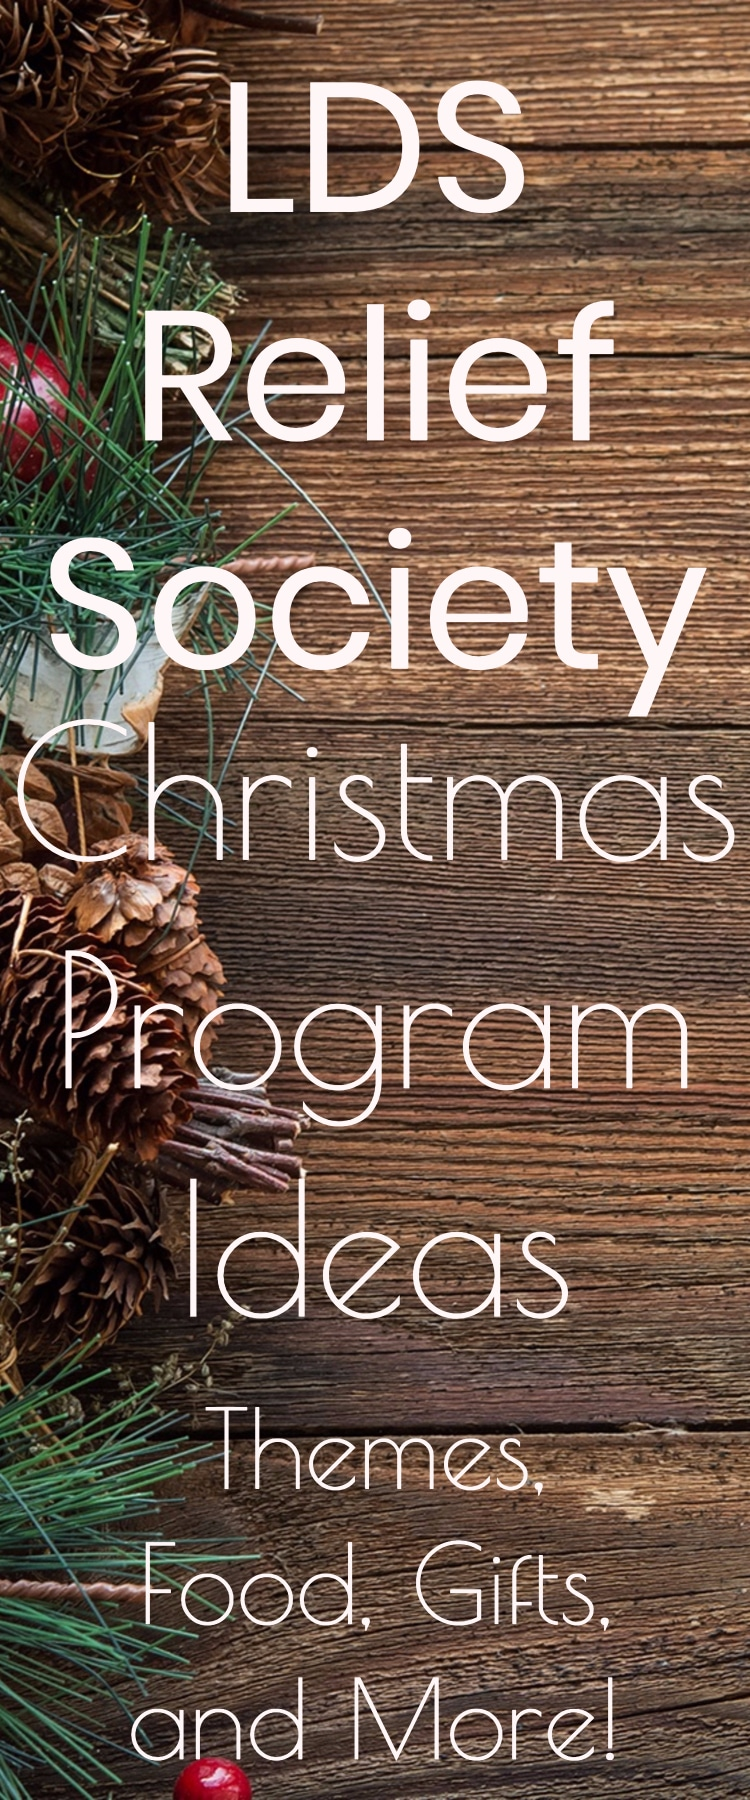 Relief Society Christmas Program Ideas: Themes, Dinner Ideas, and More!